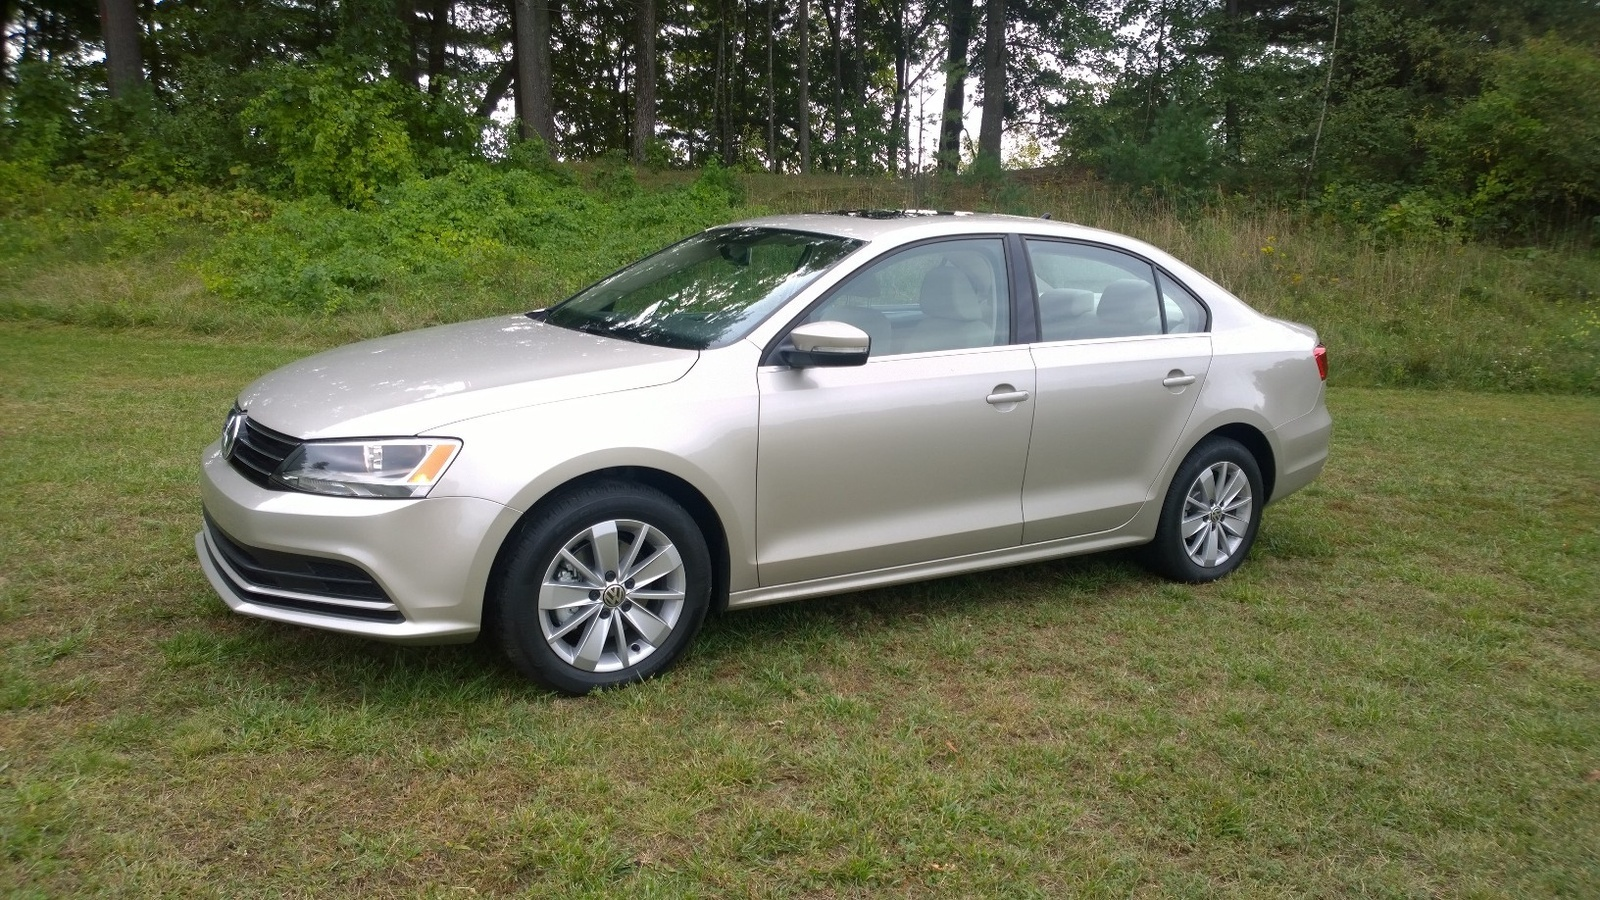 Vw jetta review 2015